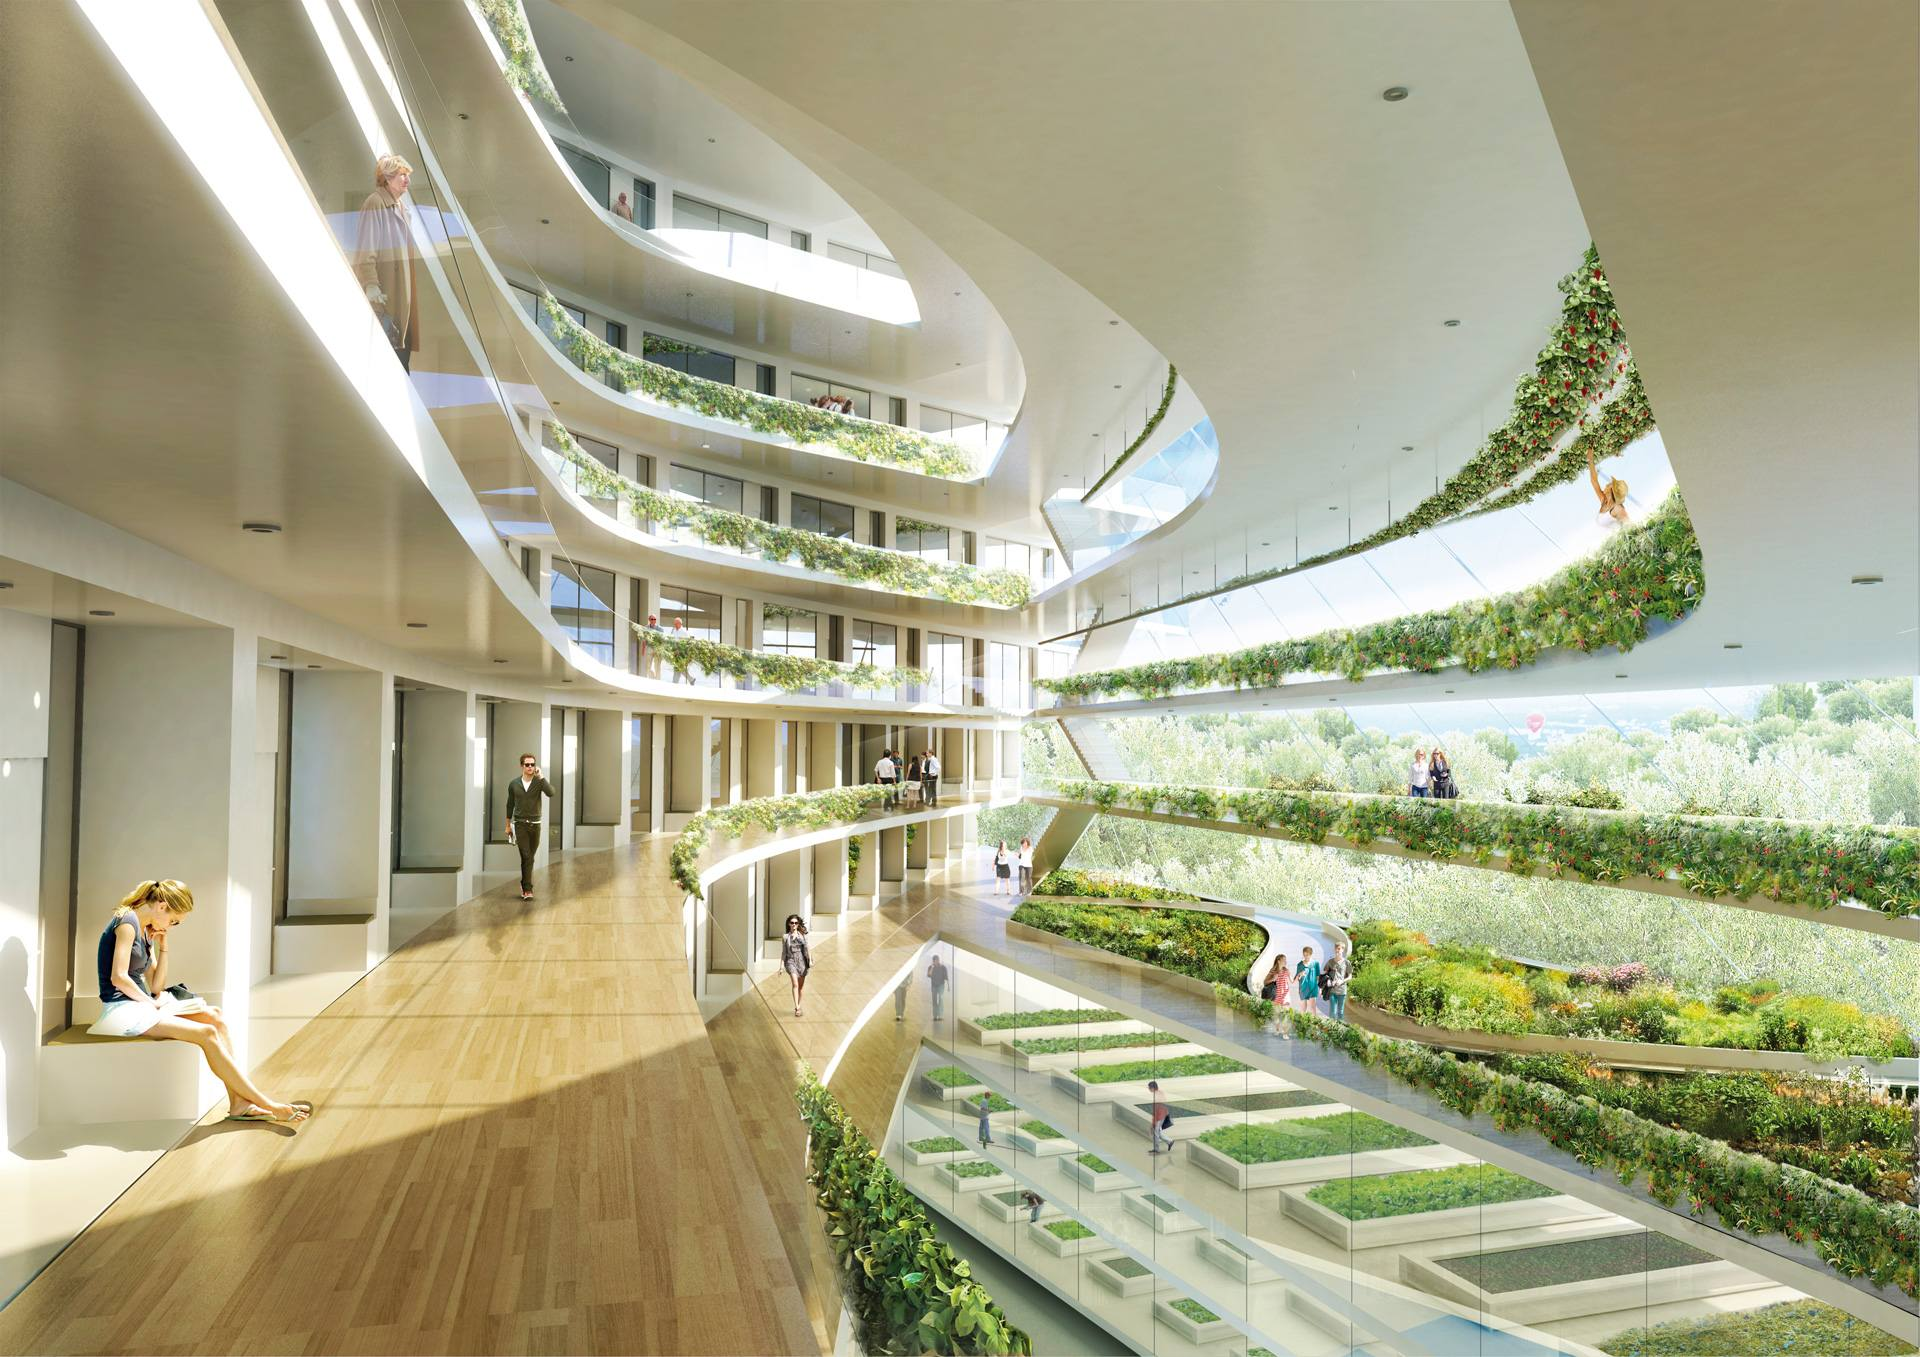 Green school stockholm air quality architectural design for College building design